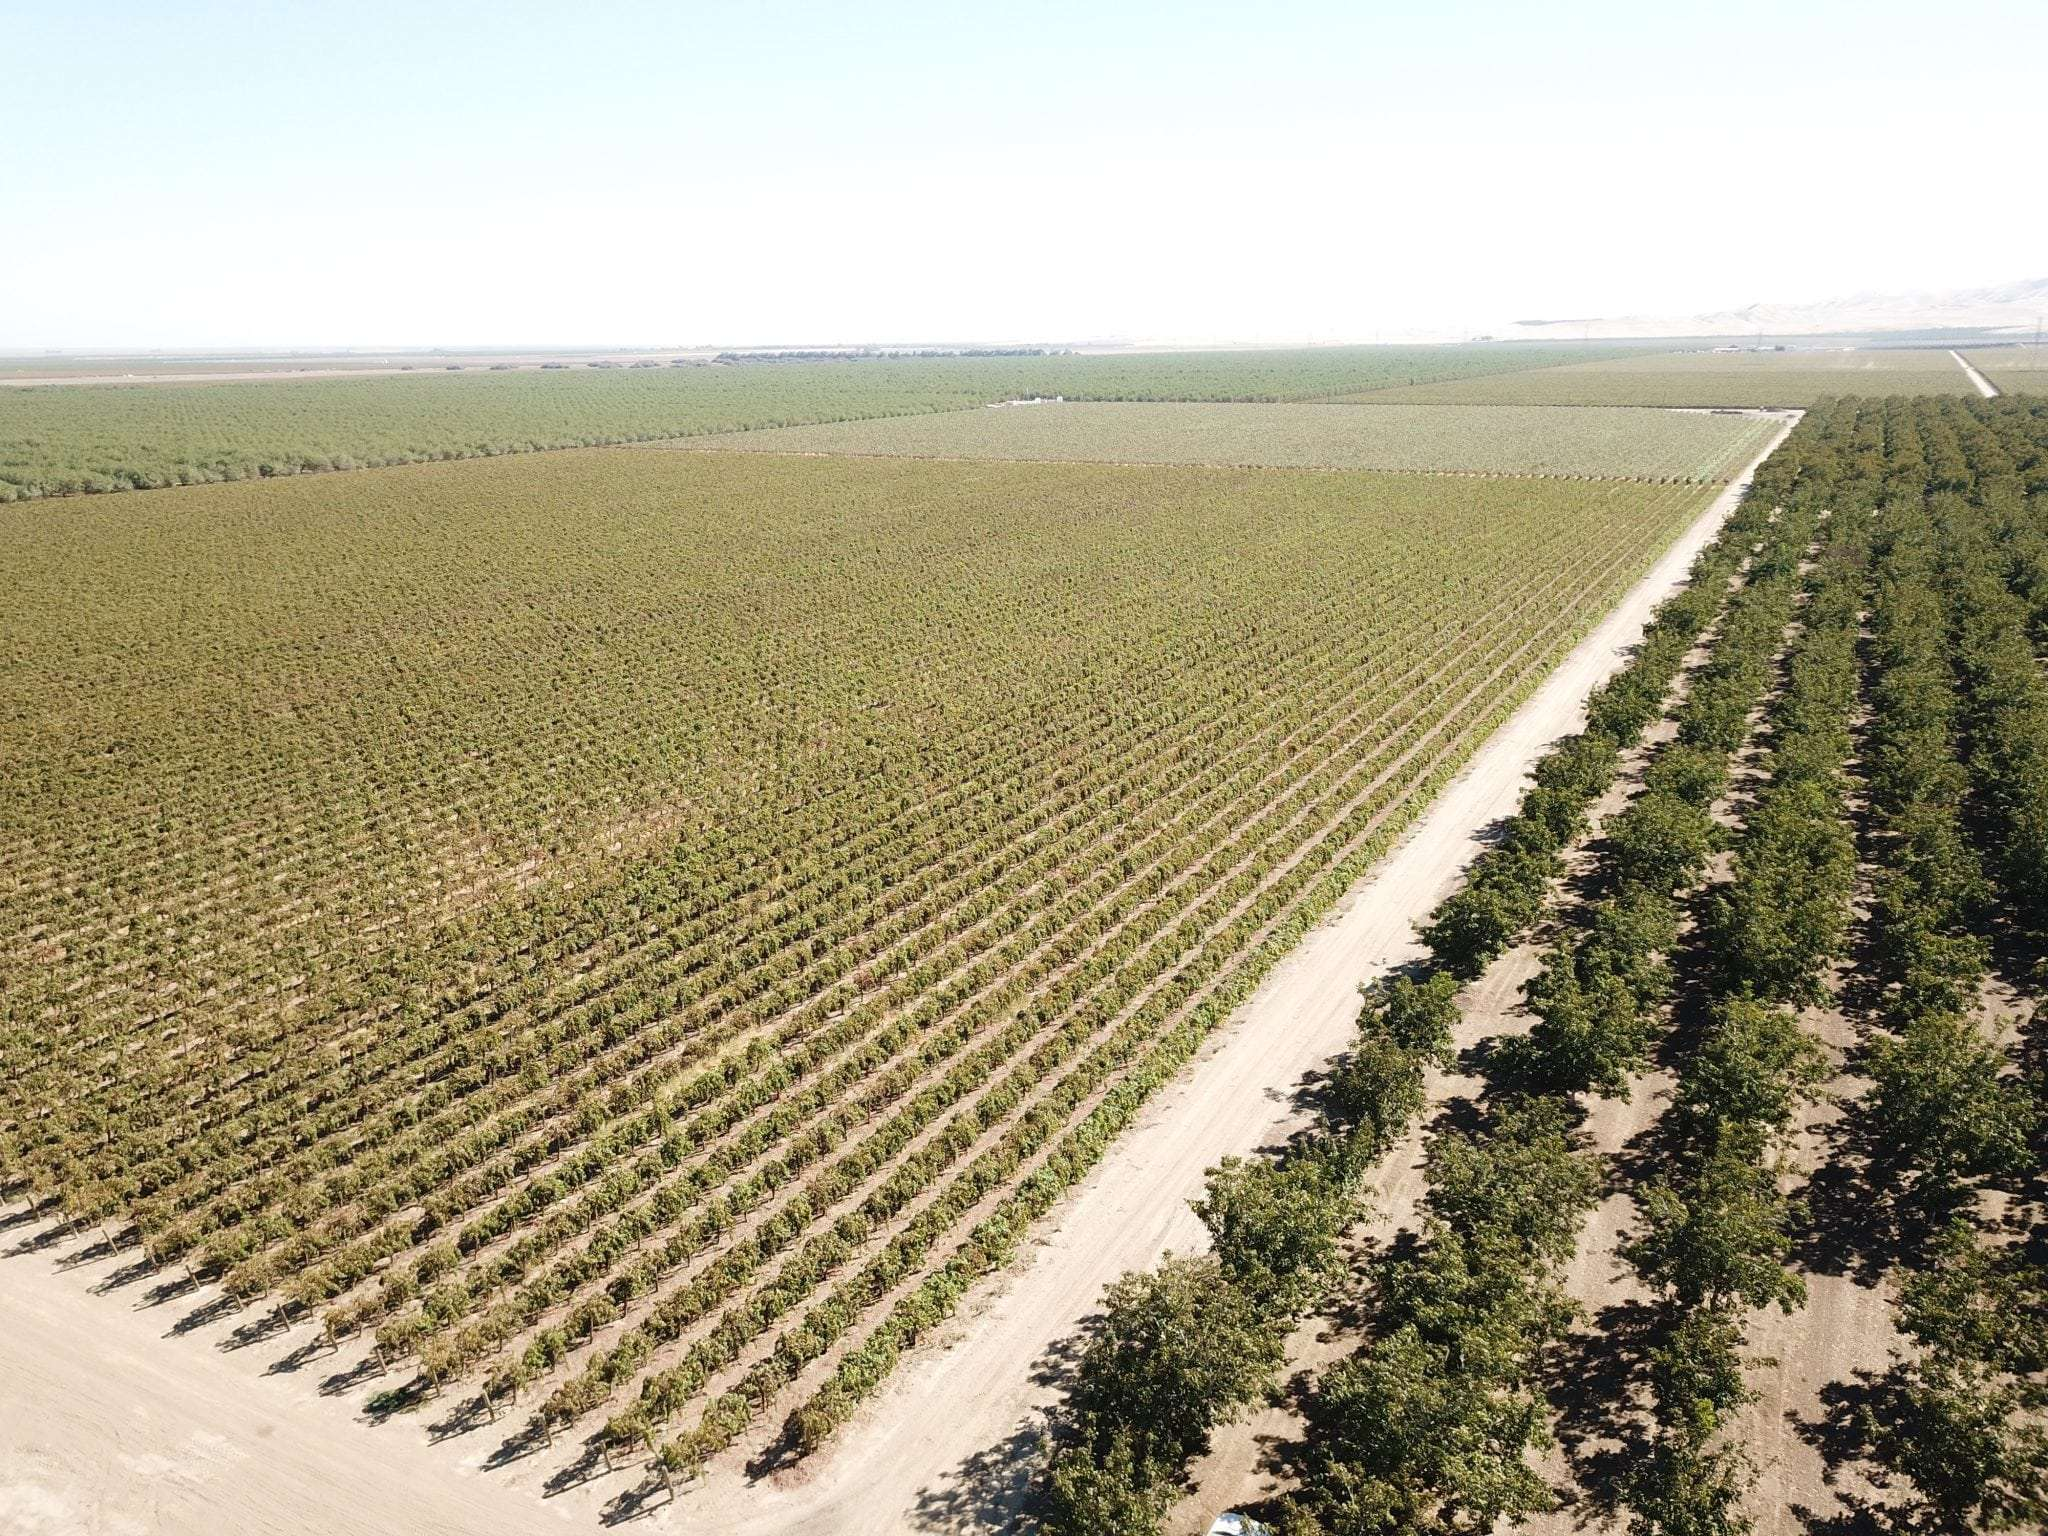 640.57 Ac. Vines, Walnuts & Open, Fresno County